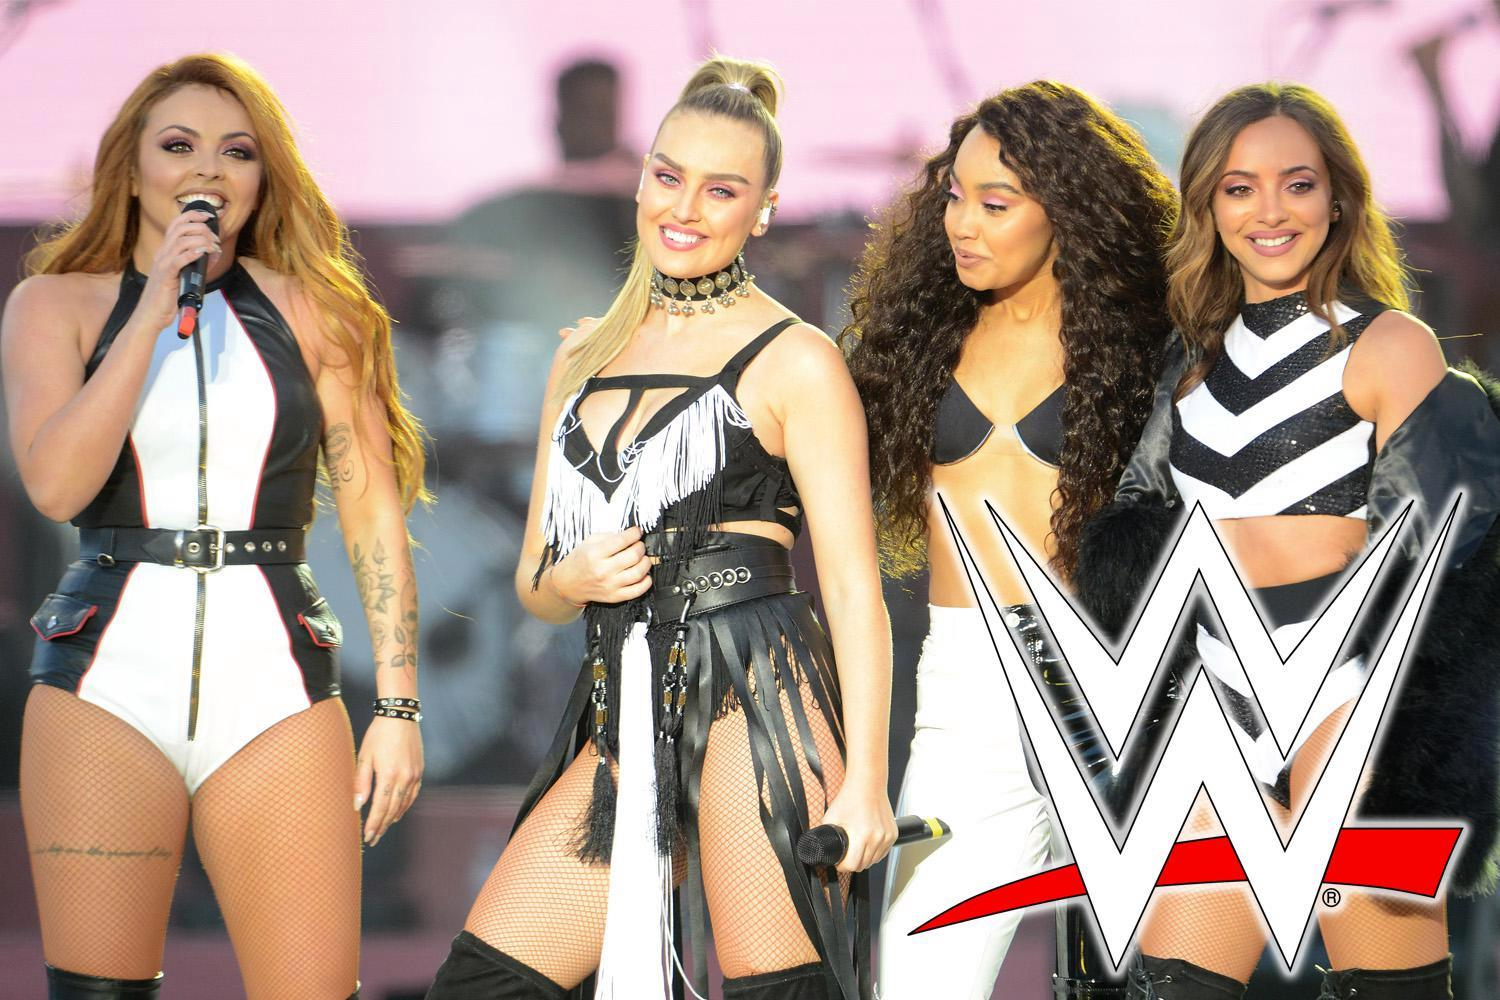 WWE news: Little Mix hit 'Power' to be official theme song for first ever women's Royal Rumble match